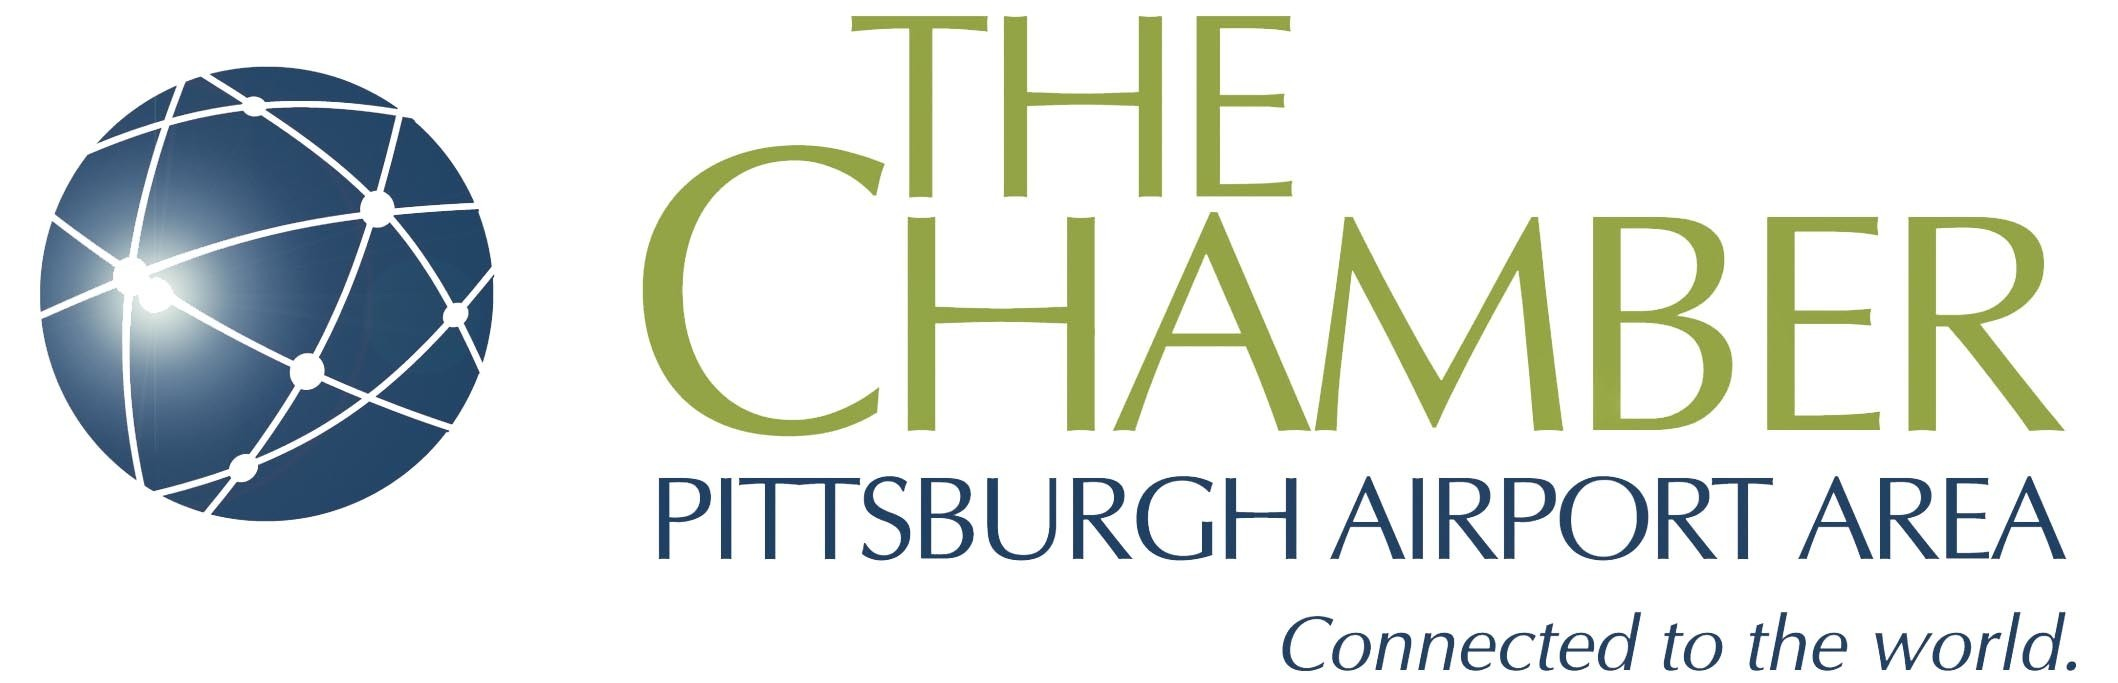 Pittsburgh Airport Area Chamber of Commerce